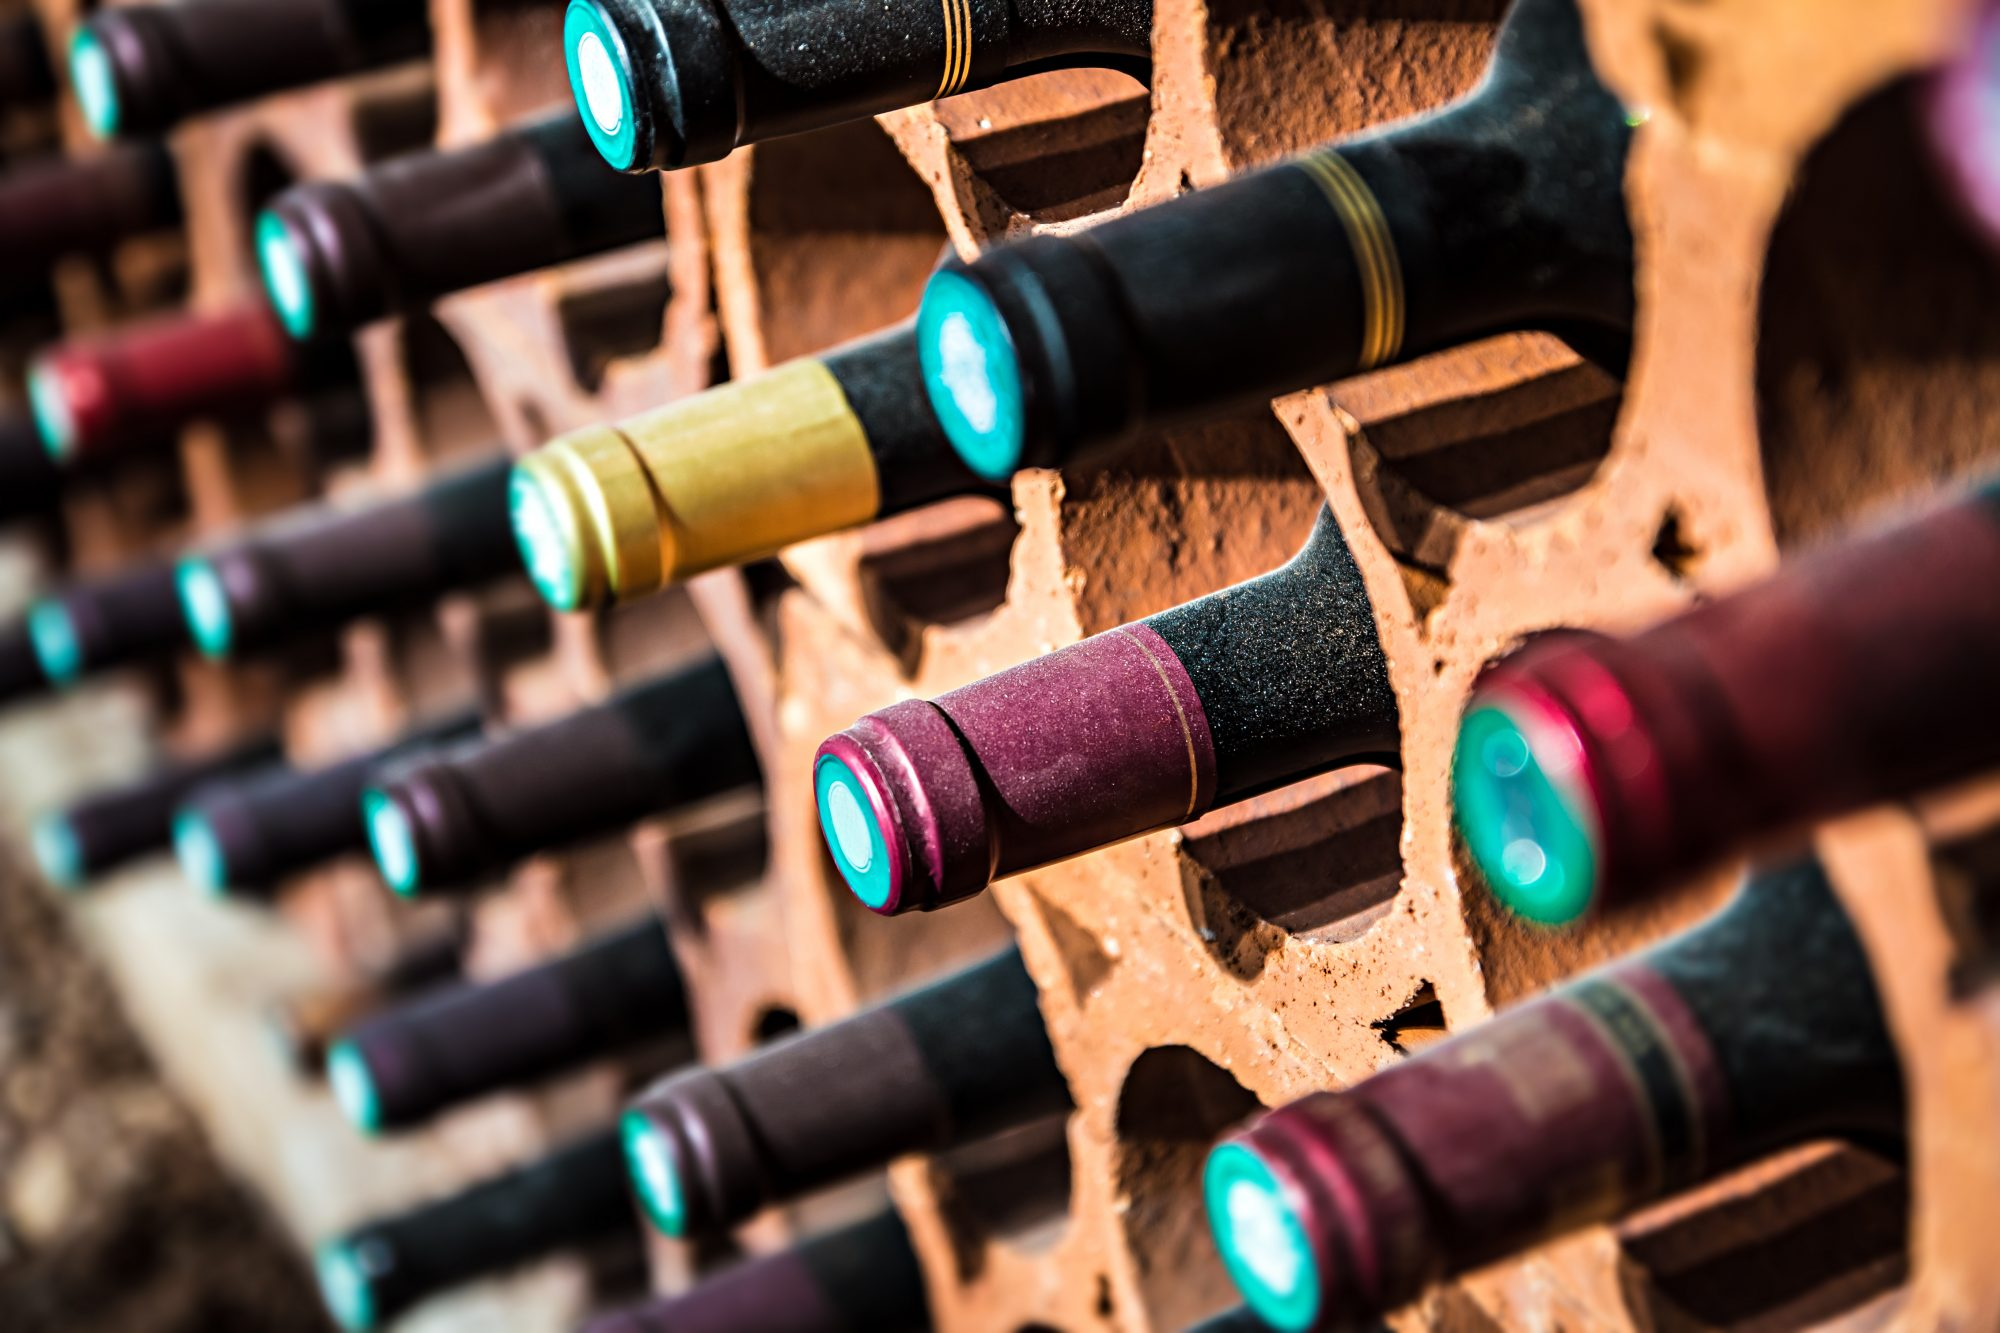 Wine bootles from cellar in selective focus